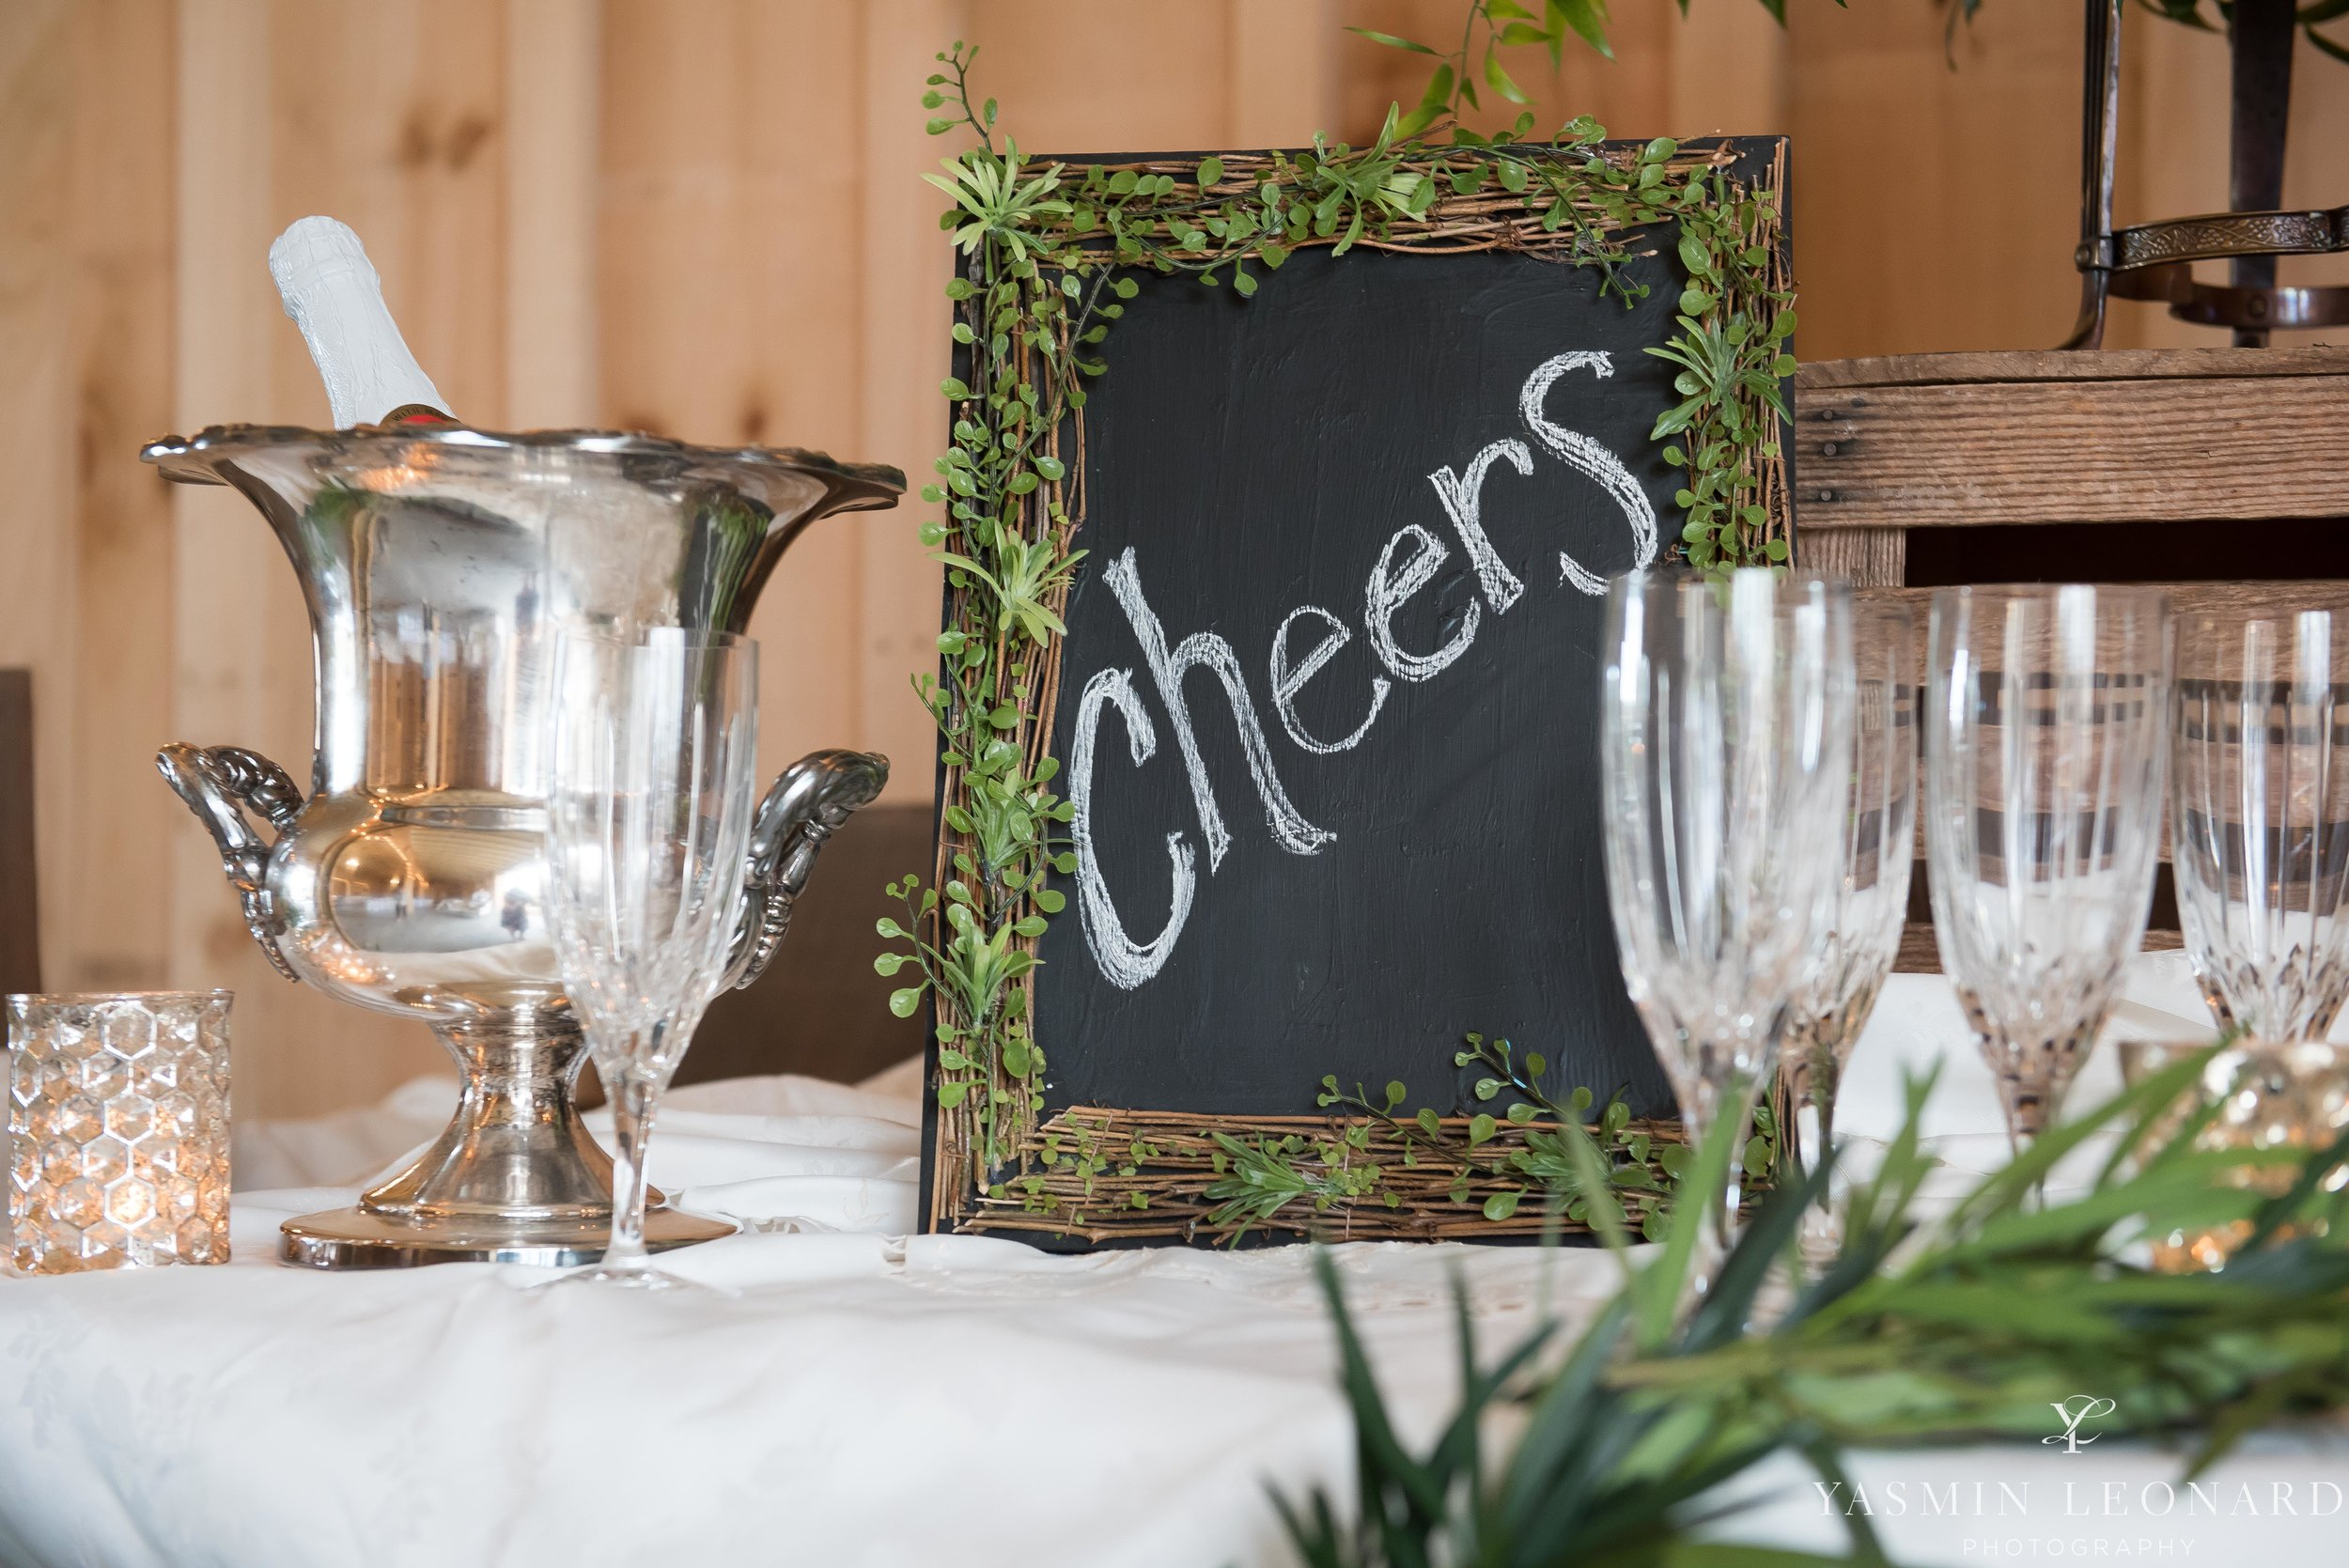 Old Homeplace Vineyard - Grits and Glitter - Dashing Dames Bridal Boutique - Just Priceless - Yasmin Leonard Photography - High Point Weddings - NC Weddings - NC Wedding Venues - High Point Jewelers - NC Wines - NC Vineyards - Cupcake Cuties-37.jpg